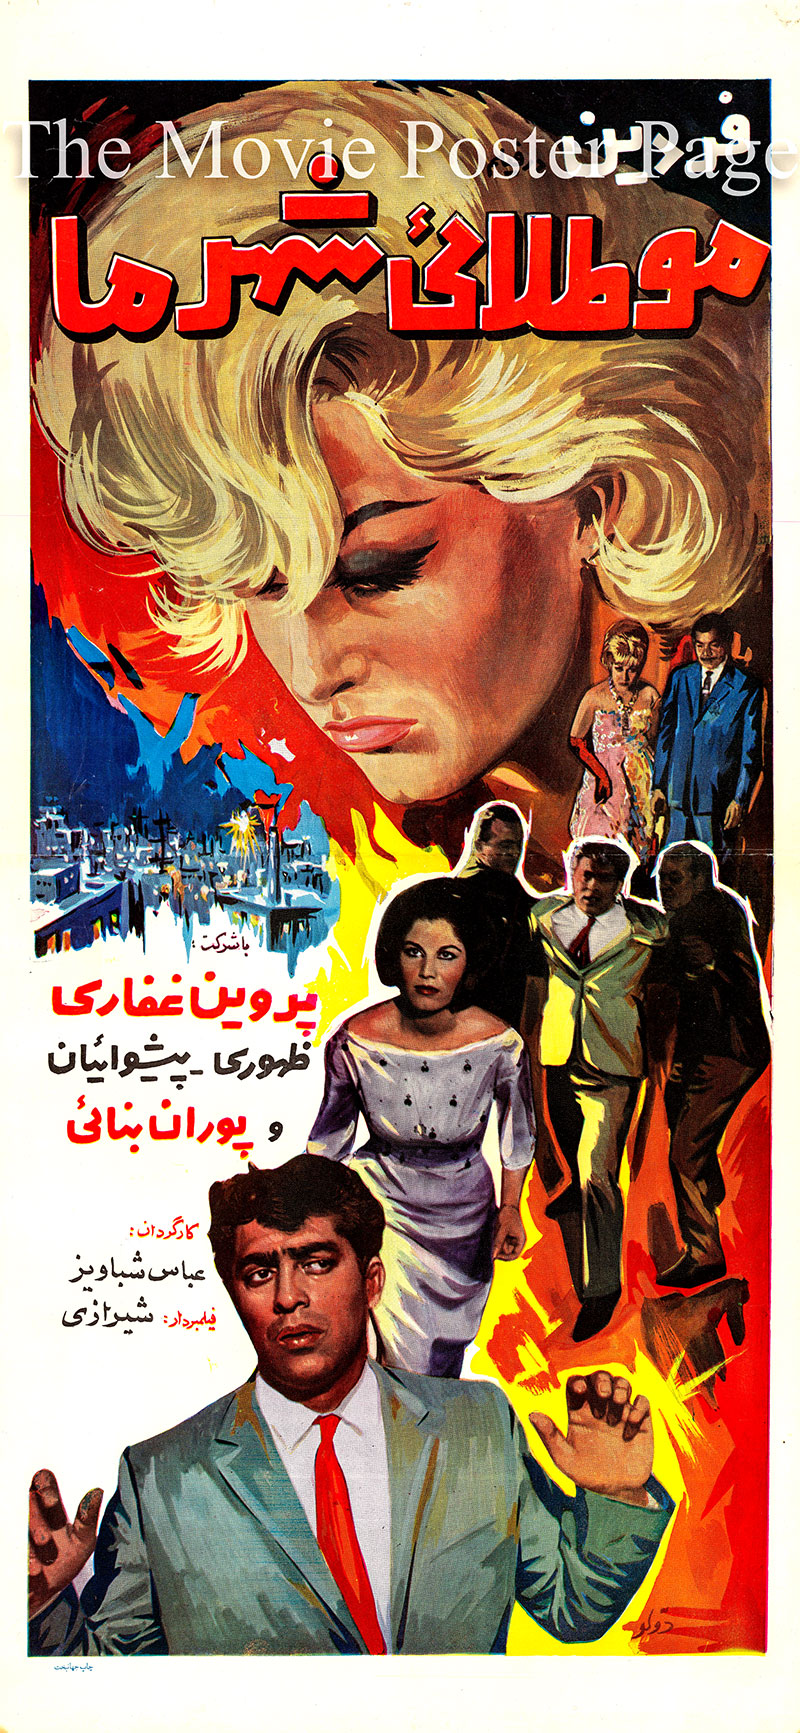 Pictured is an Iranian promotional poster for the 1965 Abbas Shabaviz film Our Town Blonde starring Pouri Baneai.